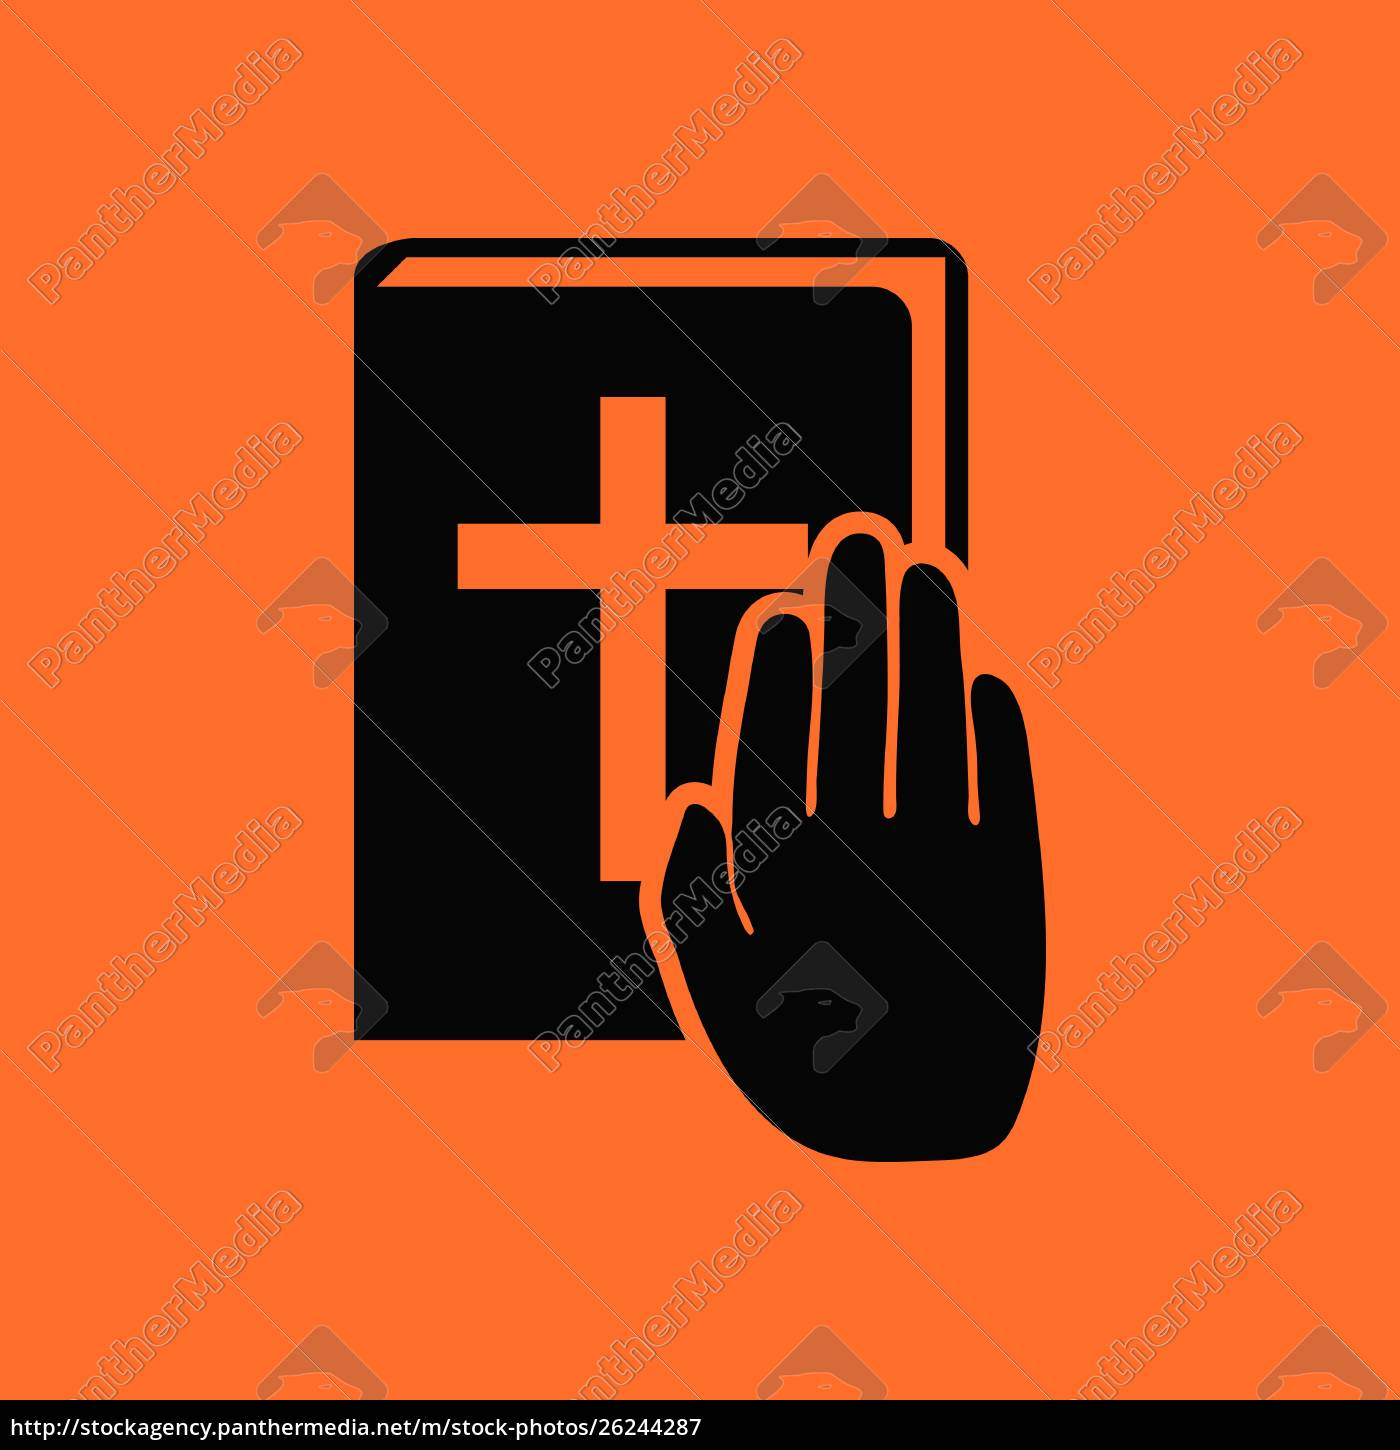 hand, on, bible, icon., orange, background - 26244287